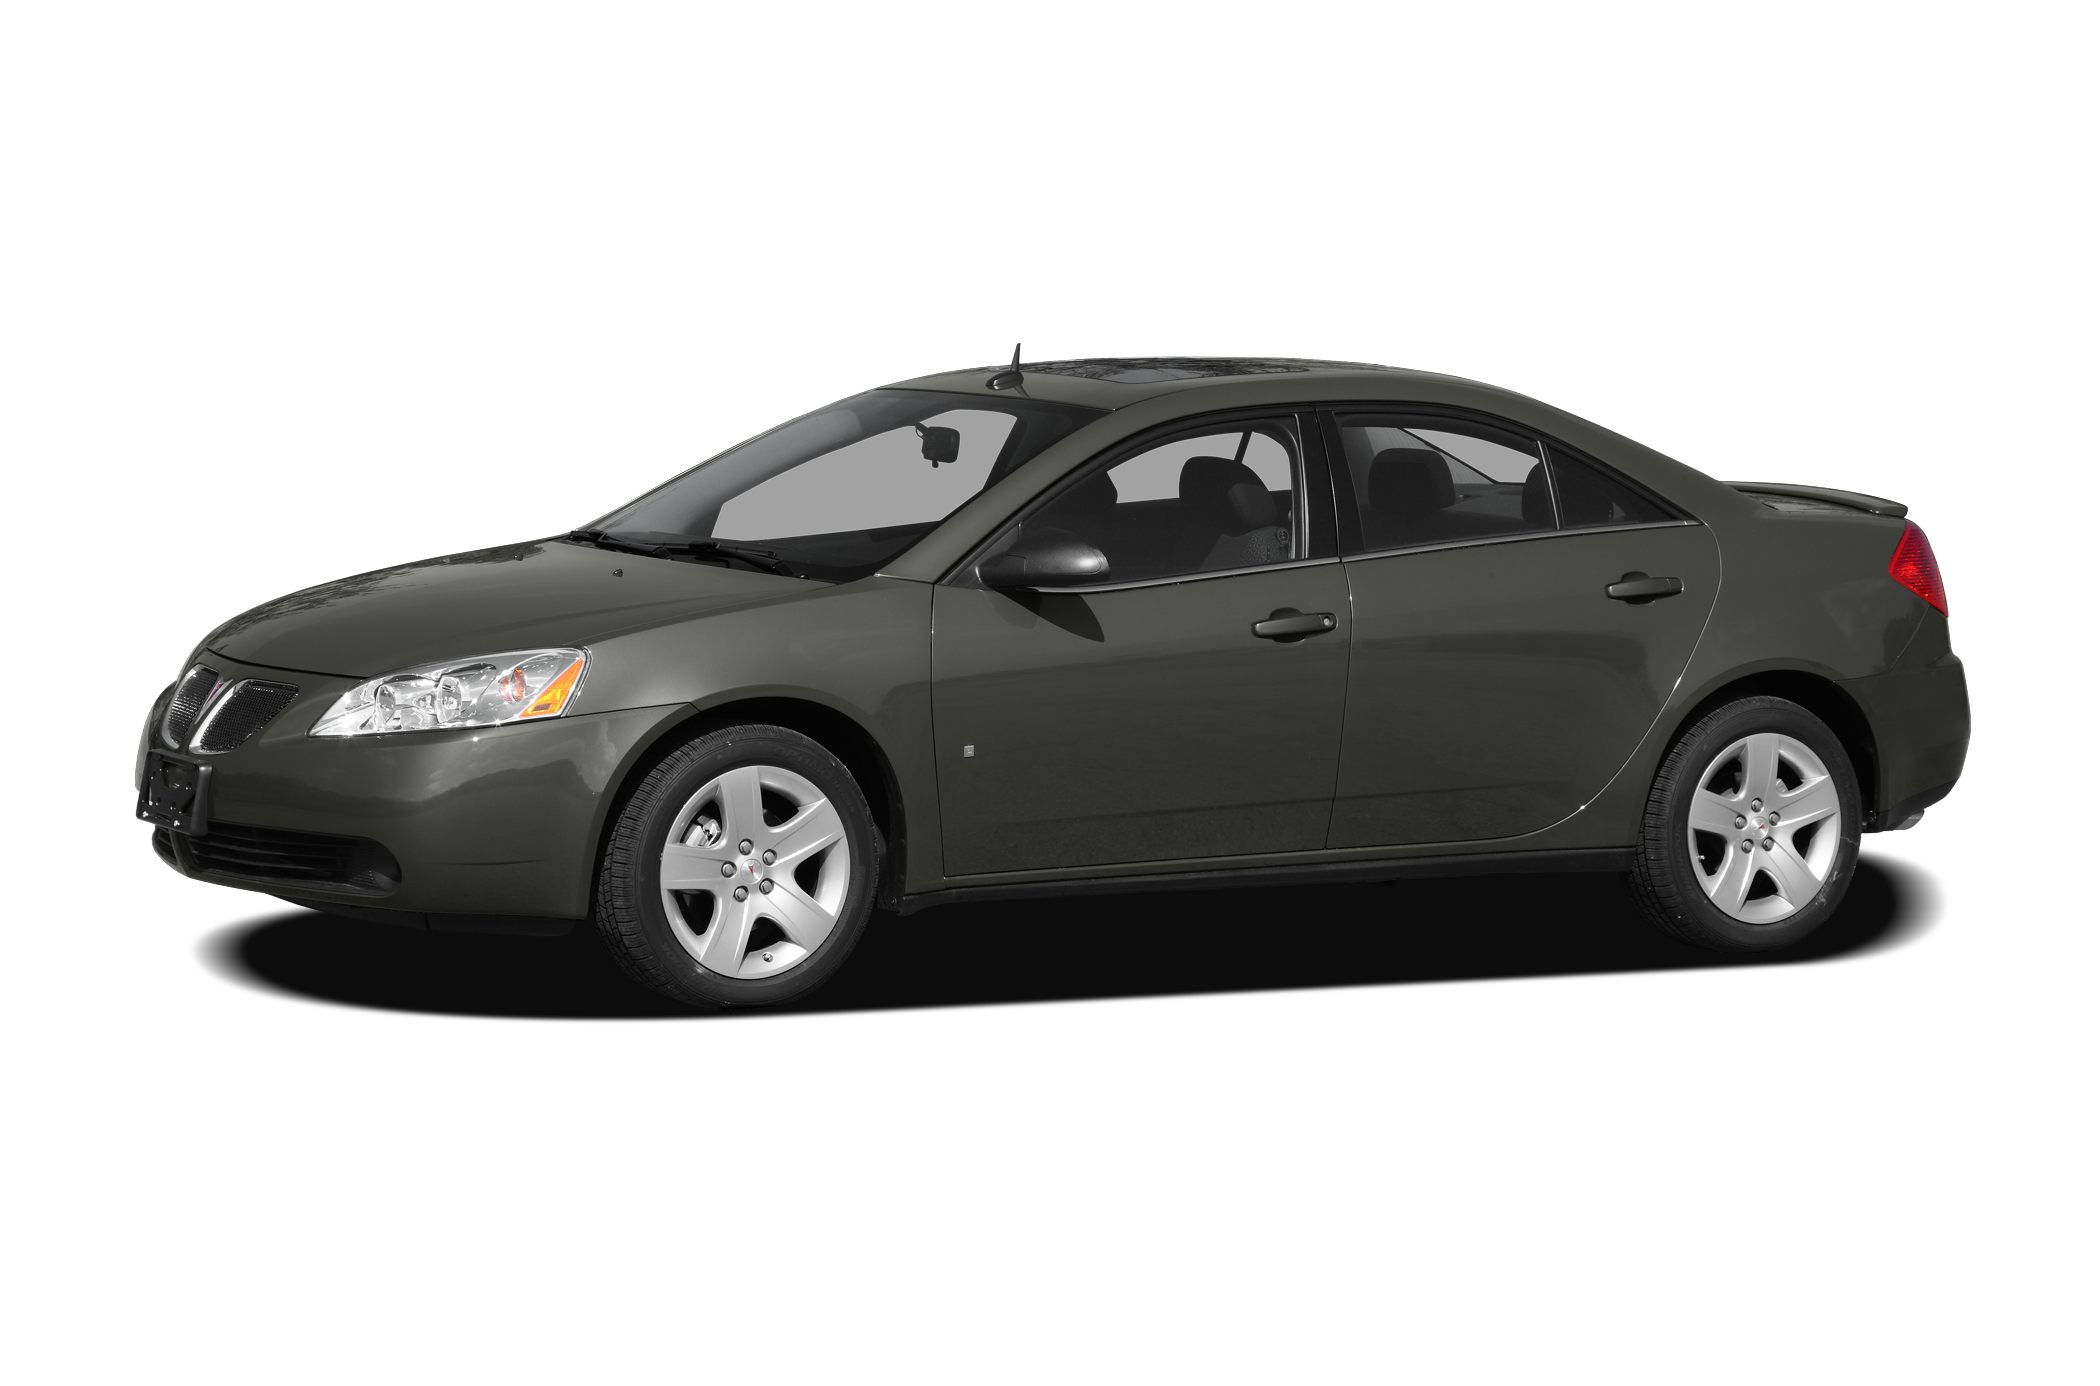 2008 Pontiac G6 Sedan for sale in Johnstown for $0 with 113,502 miles